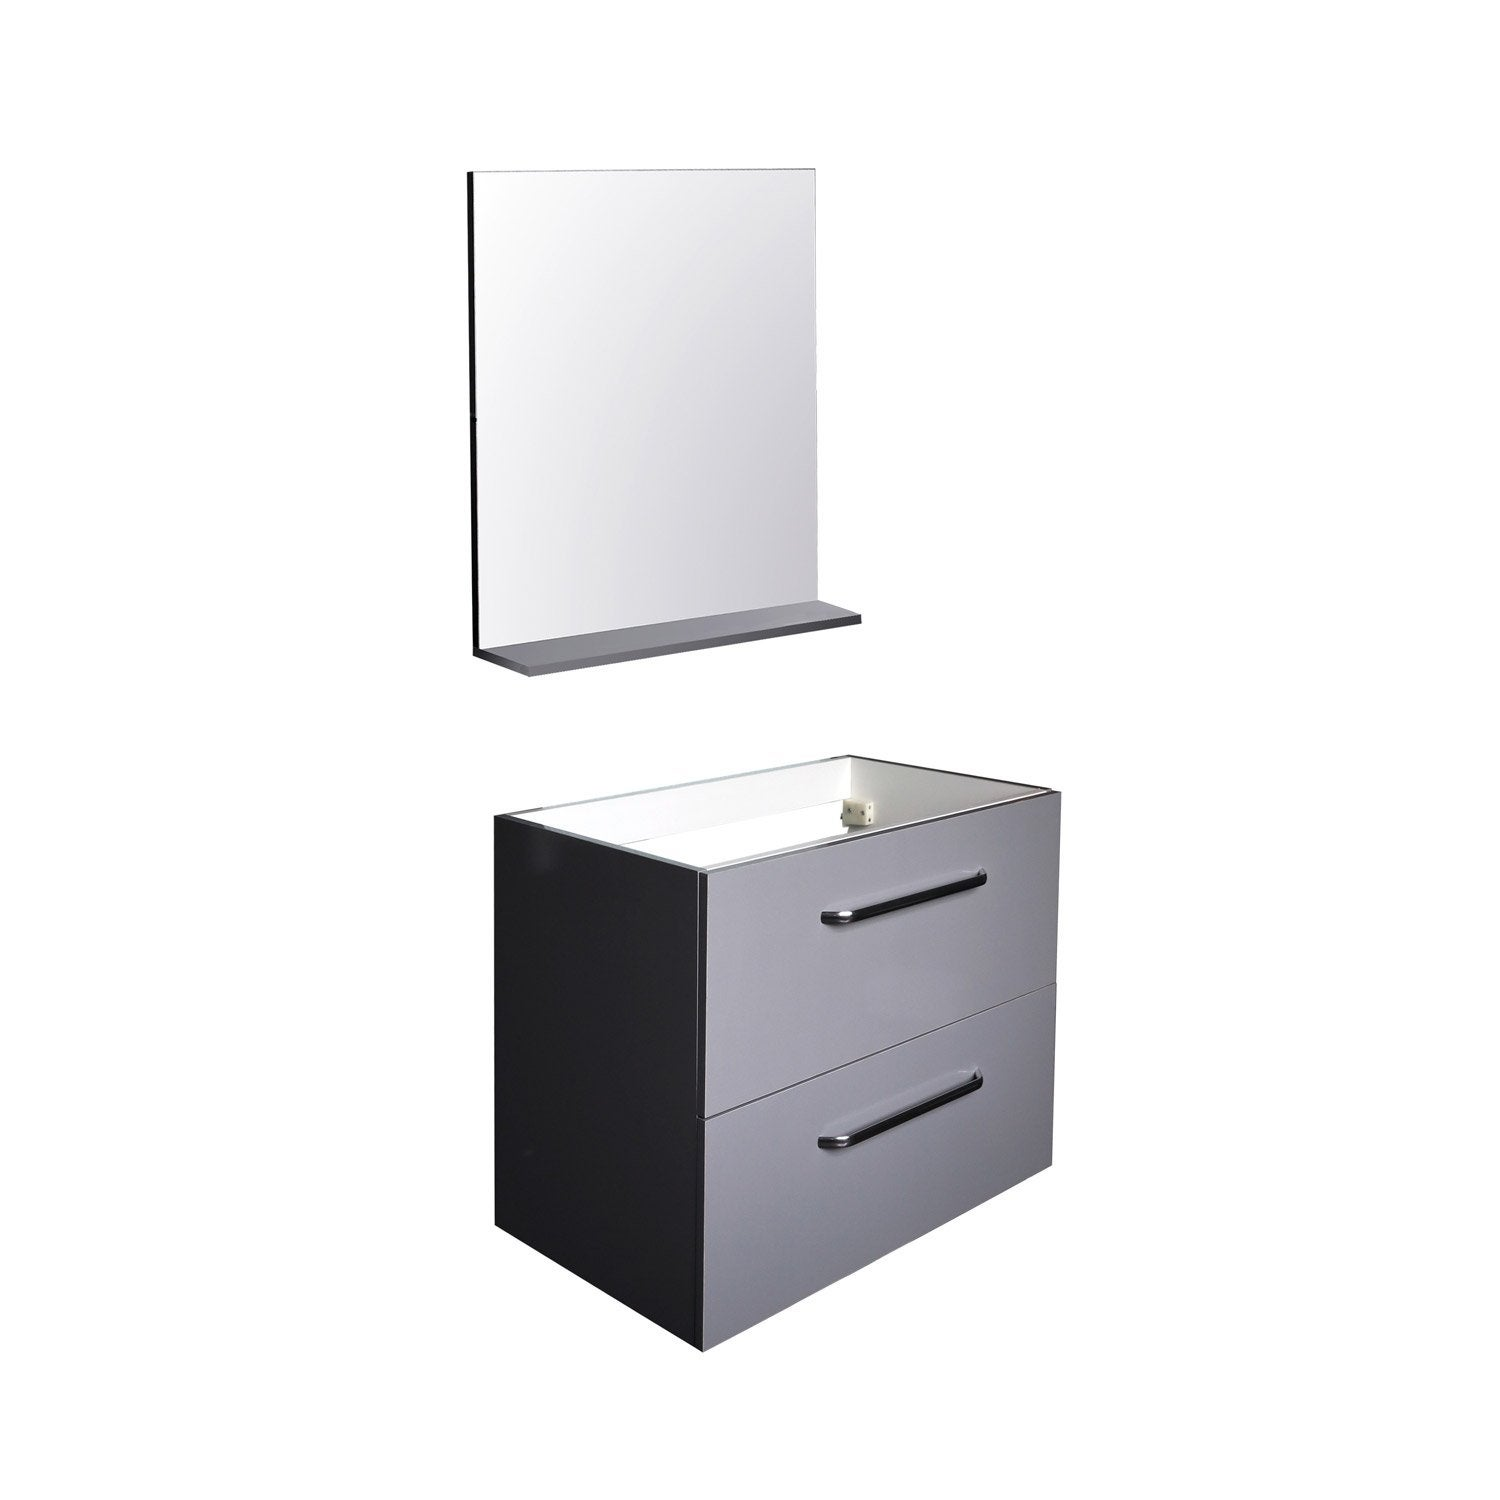 Miroir leroy merlin conceptions architecturales for Meuble sous vasque leroy merlin